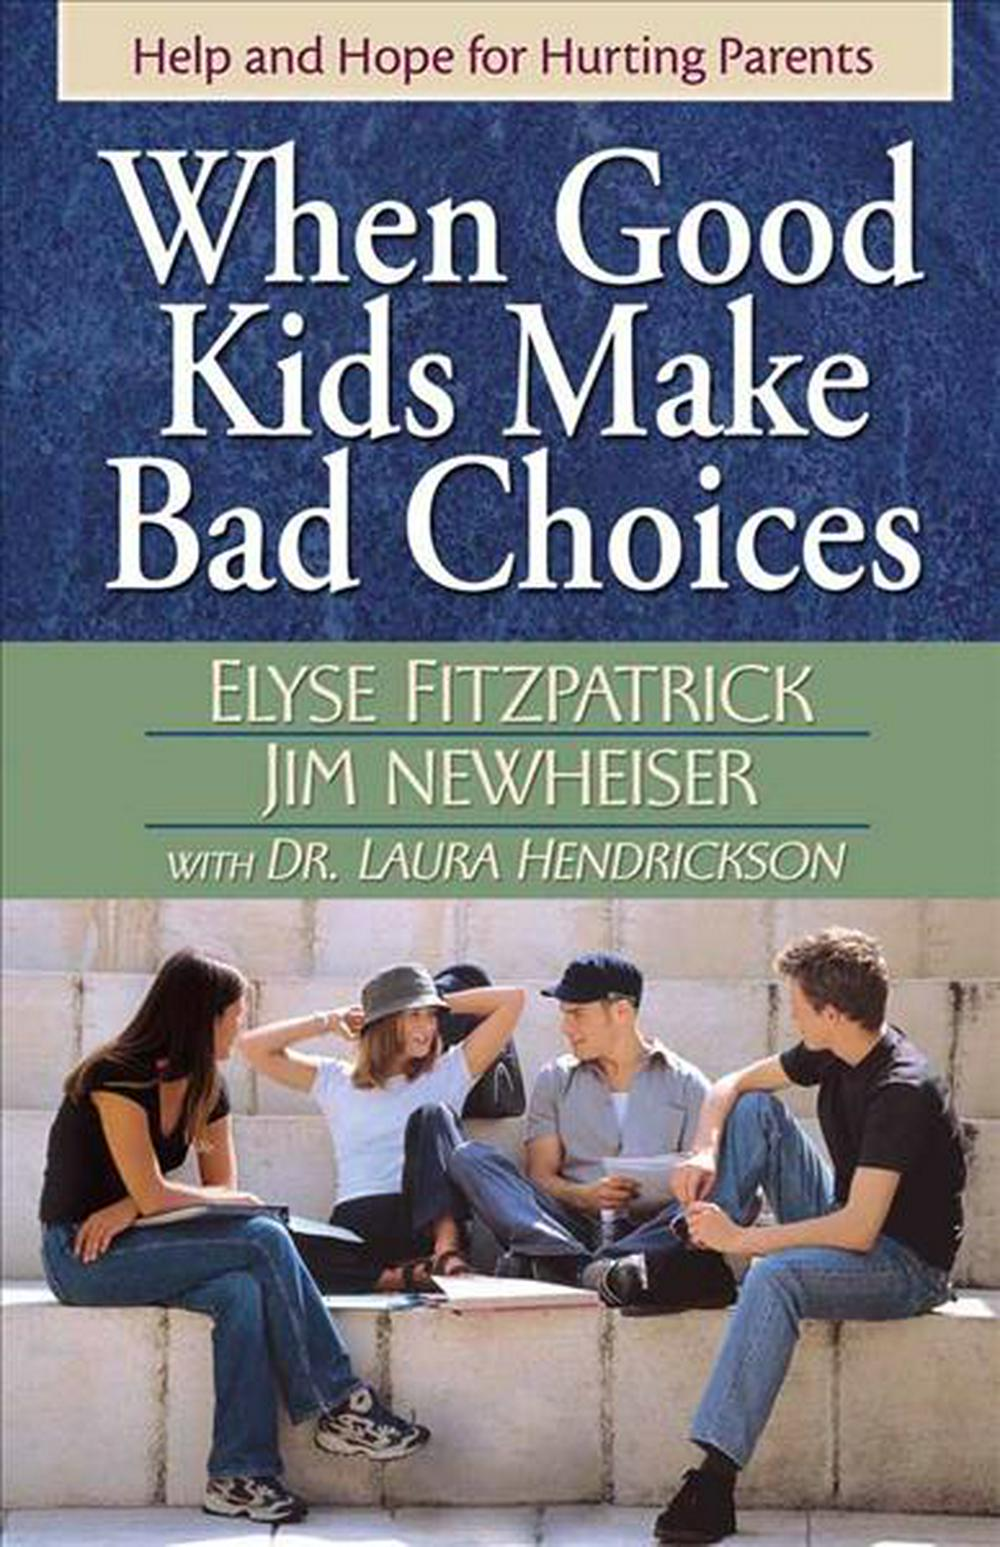 When Good Kids Make Bad Choices by Elyse Fitzpatrick, ISBN: 9780736915649